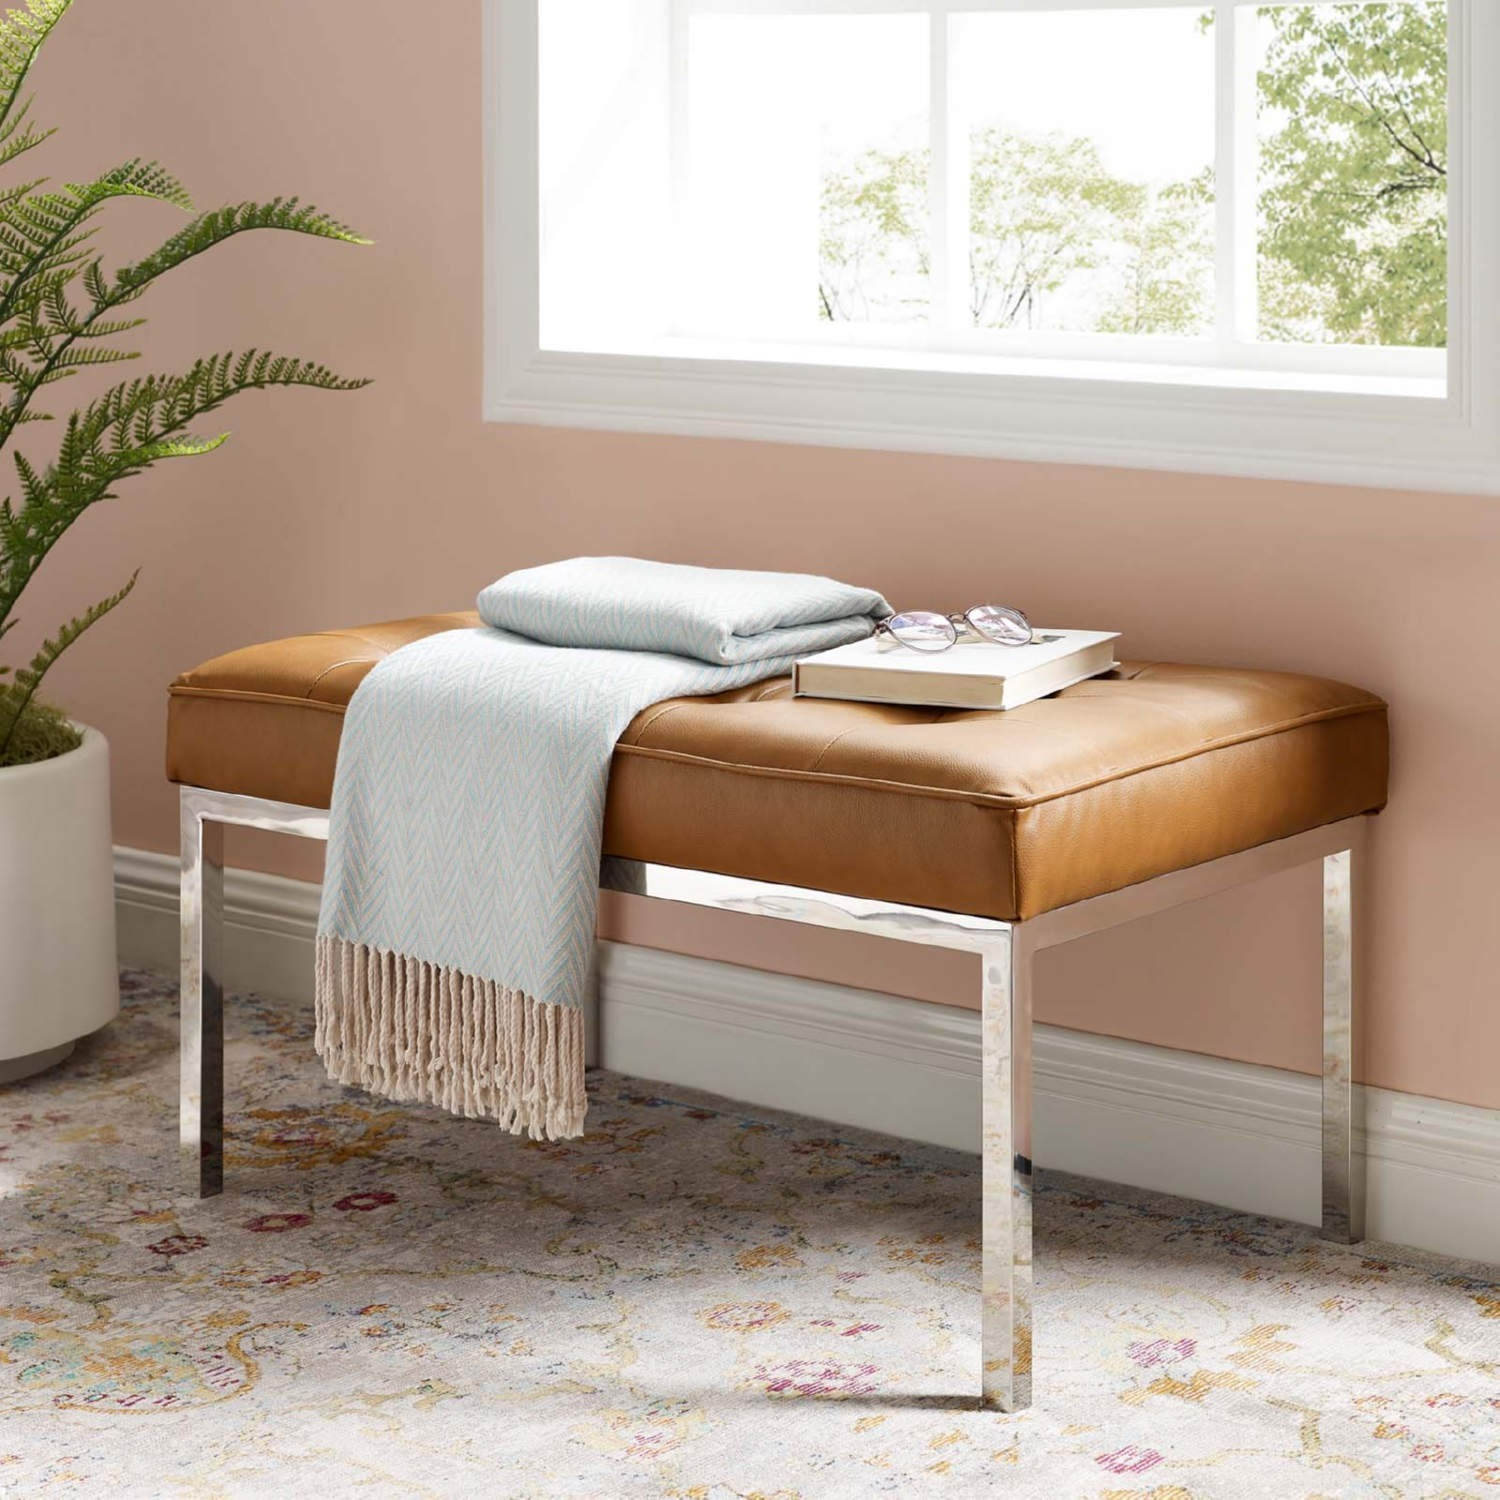 Bench In Tan Faux Leather W/ Silver Frame Finish - image-4